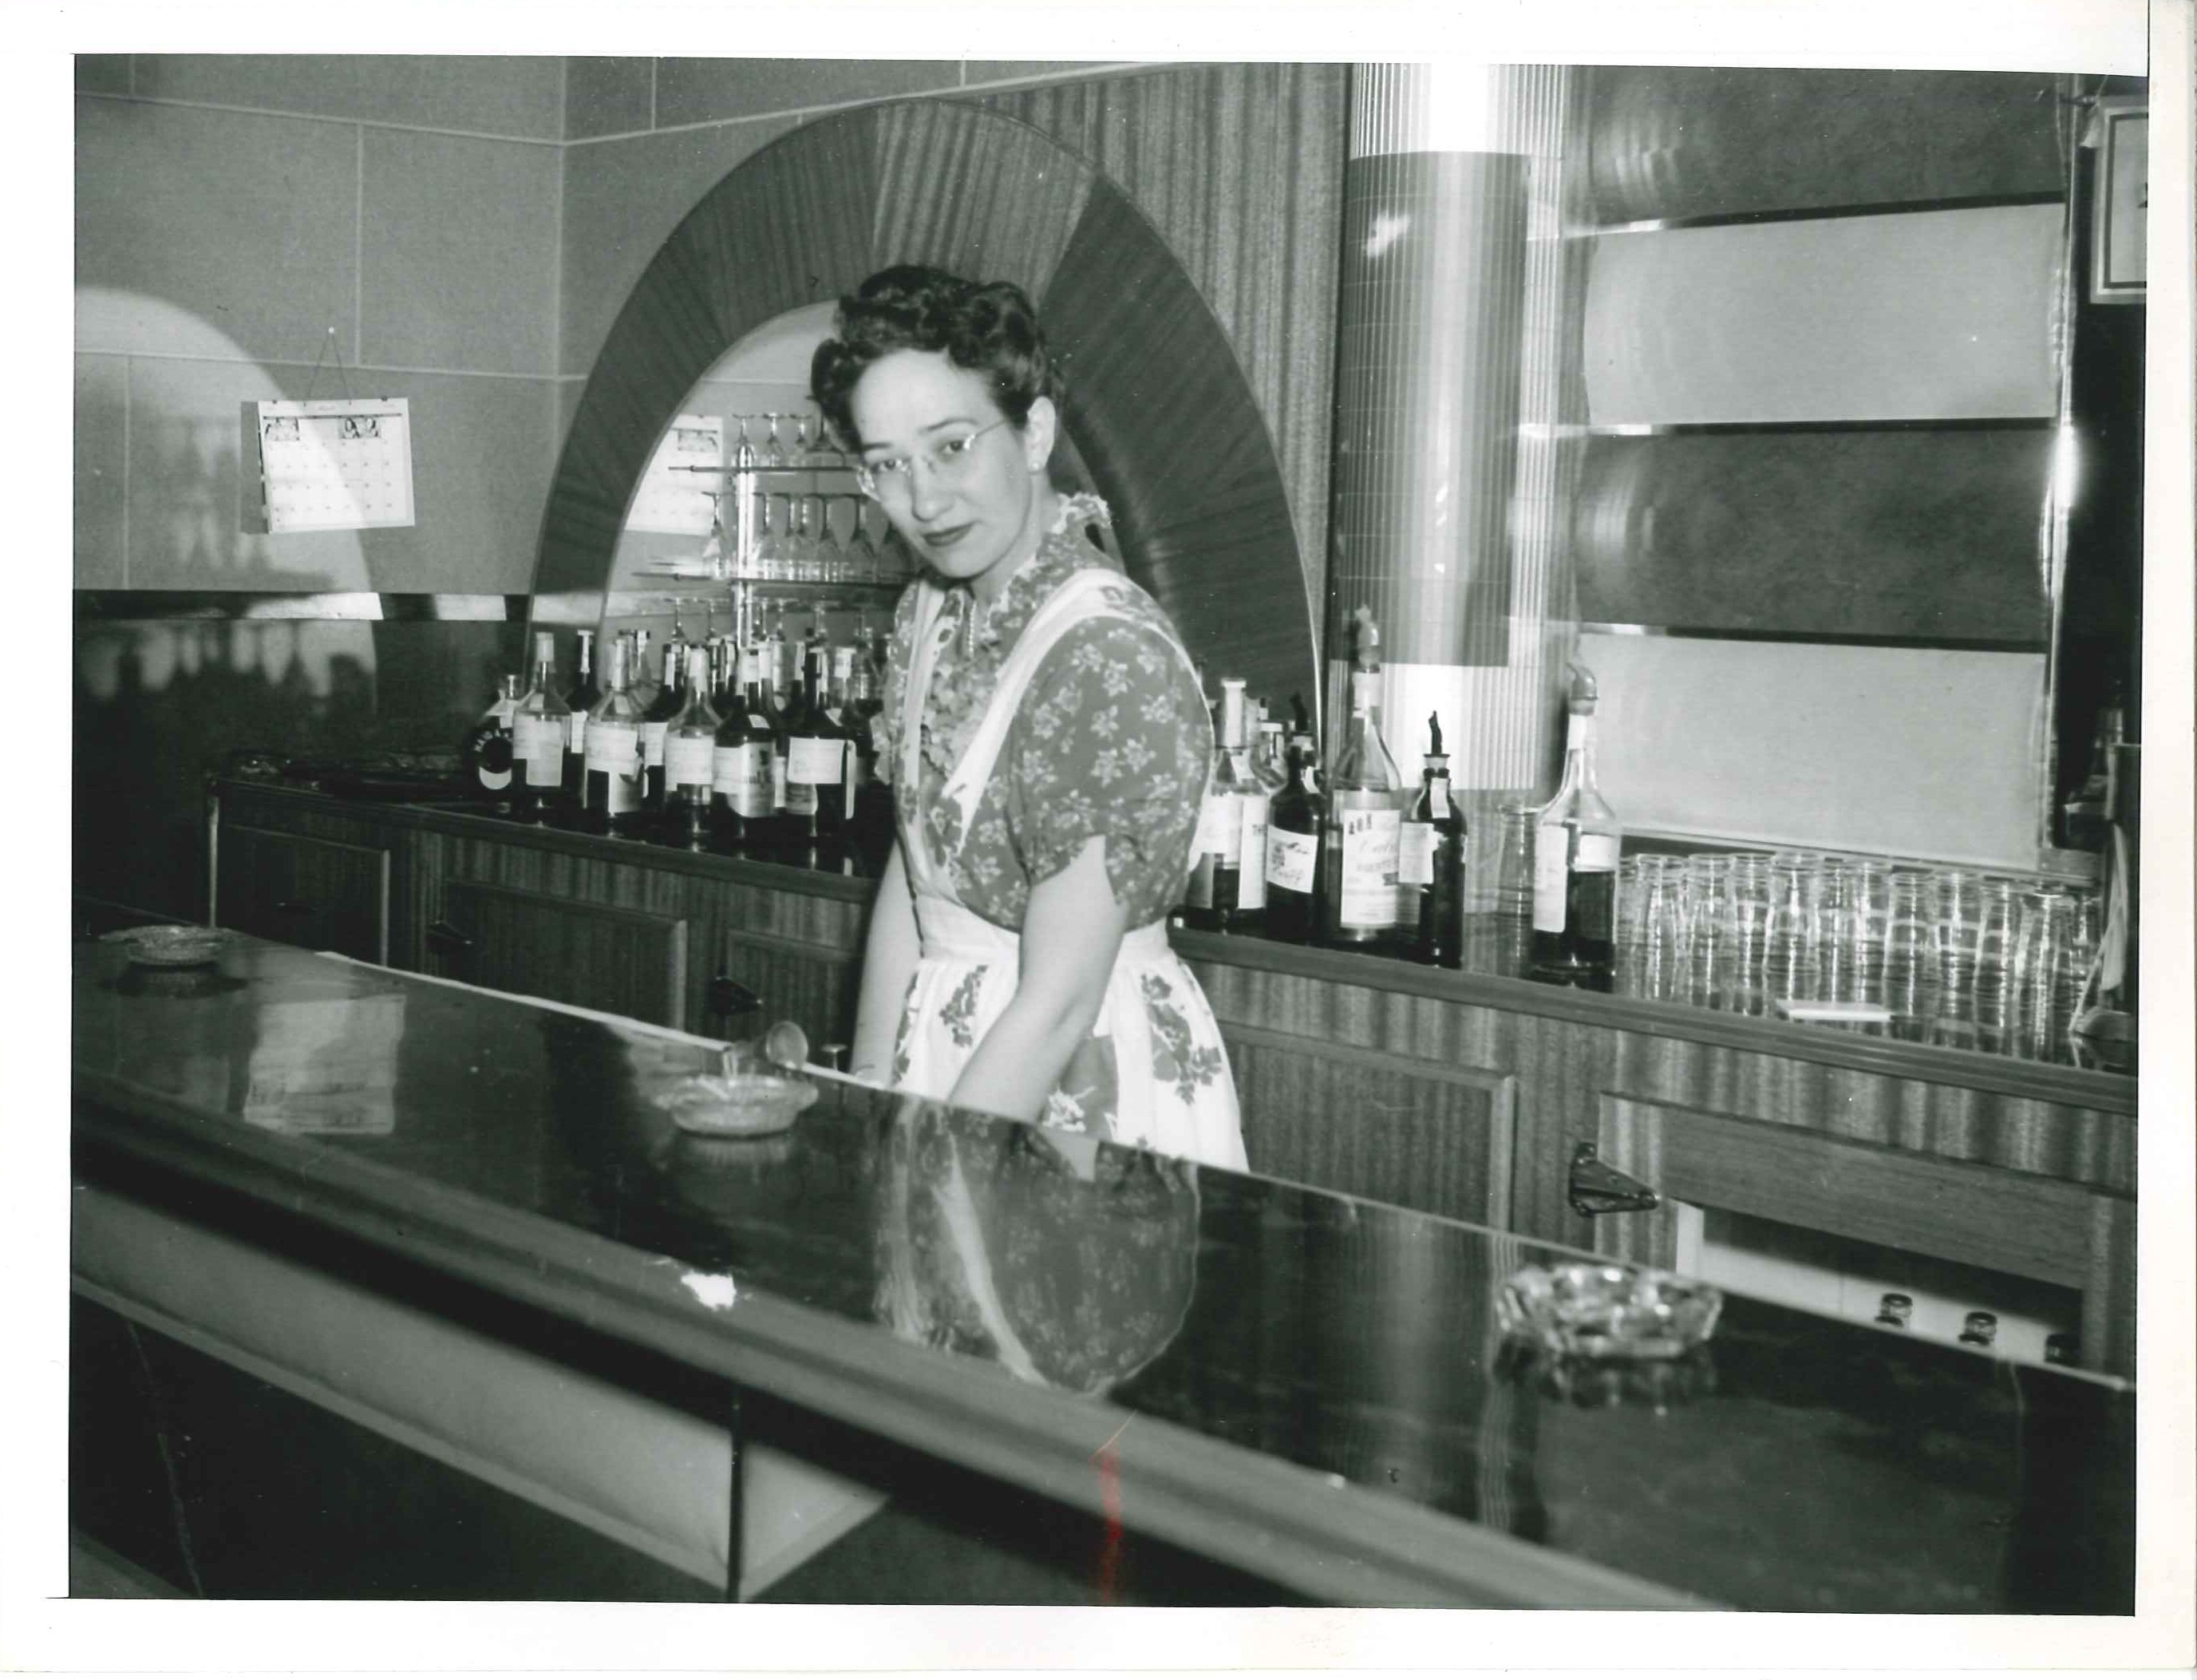 Petre Belaustegui Coscorrosa working at the Chico Club prior to 1950.